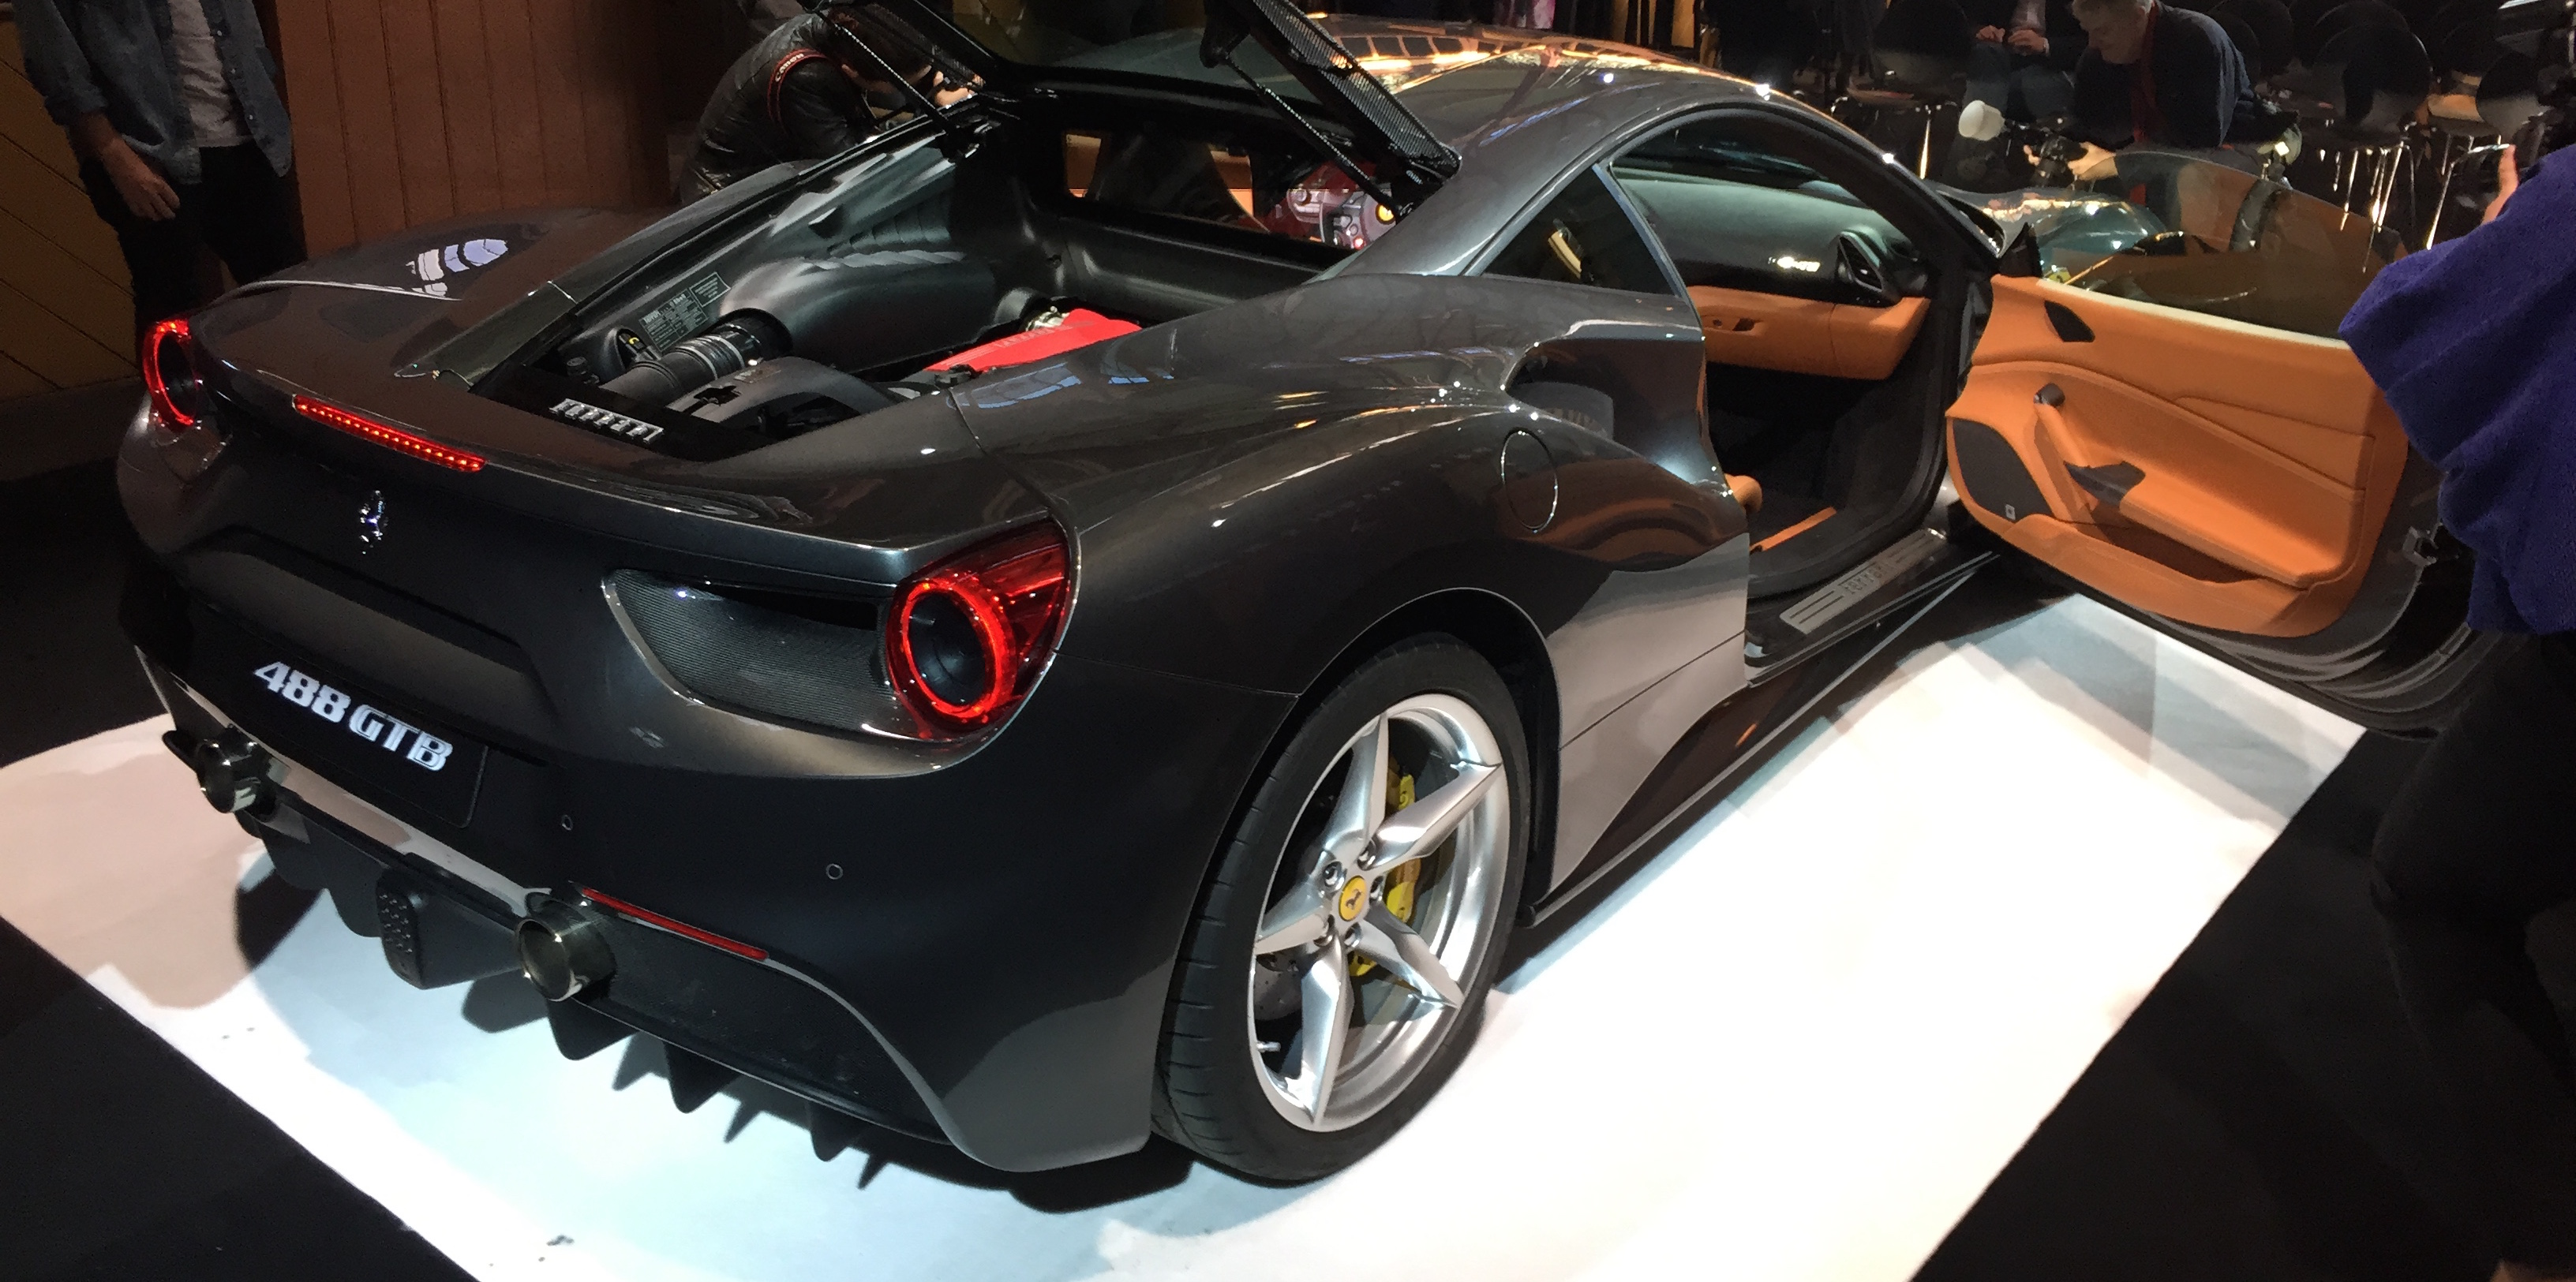 Ferrari 488 Gtb Debuts In Australia With Sharper 469 888 Price Tag Caradvice